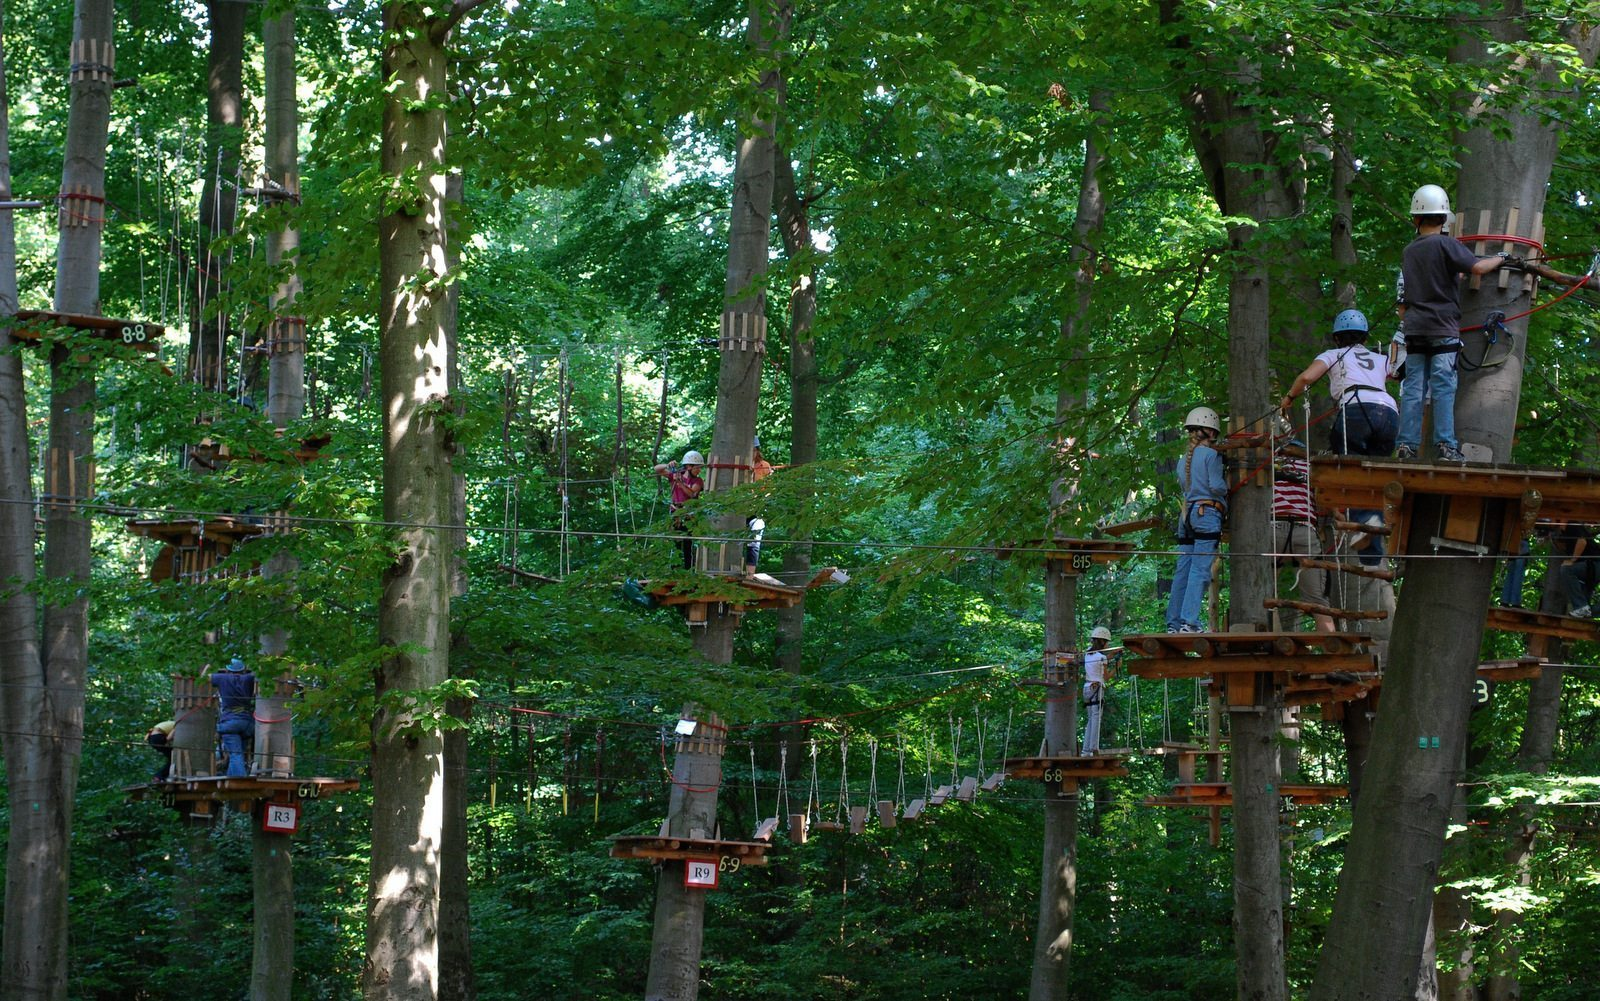 Image: People climbing in tree in a ropes course